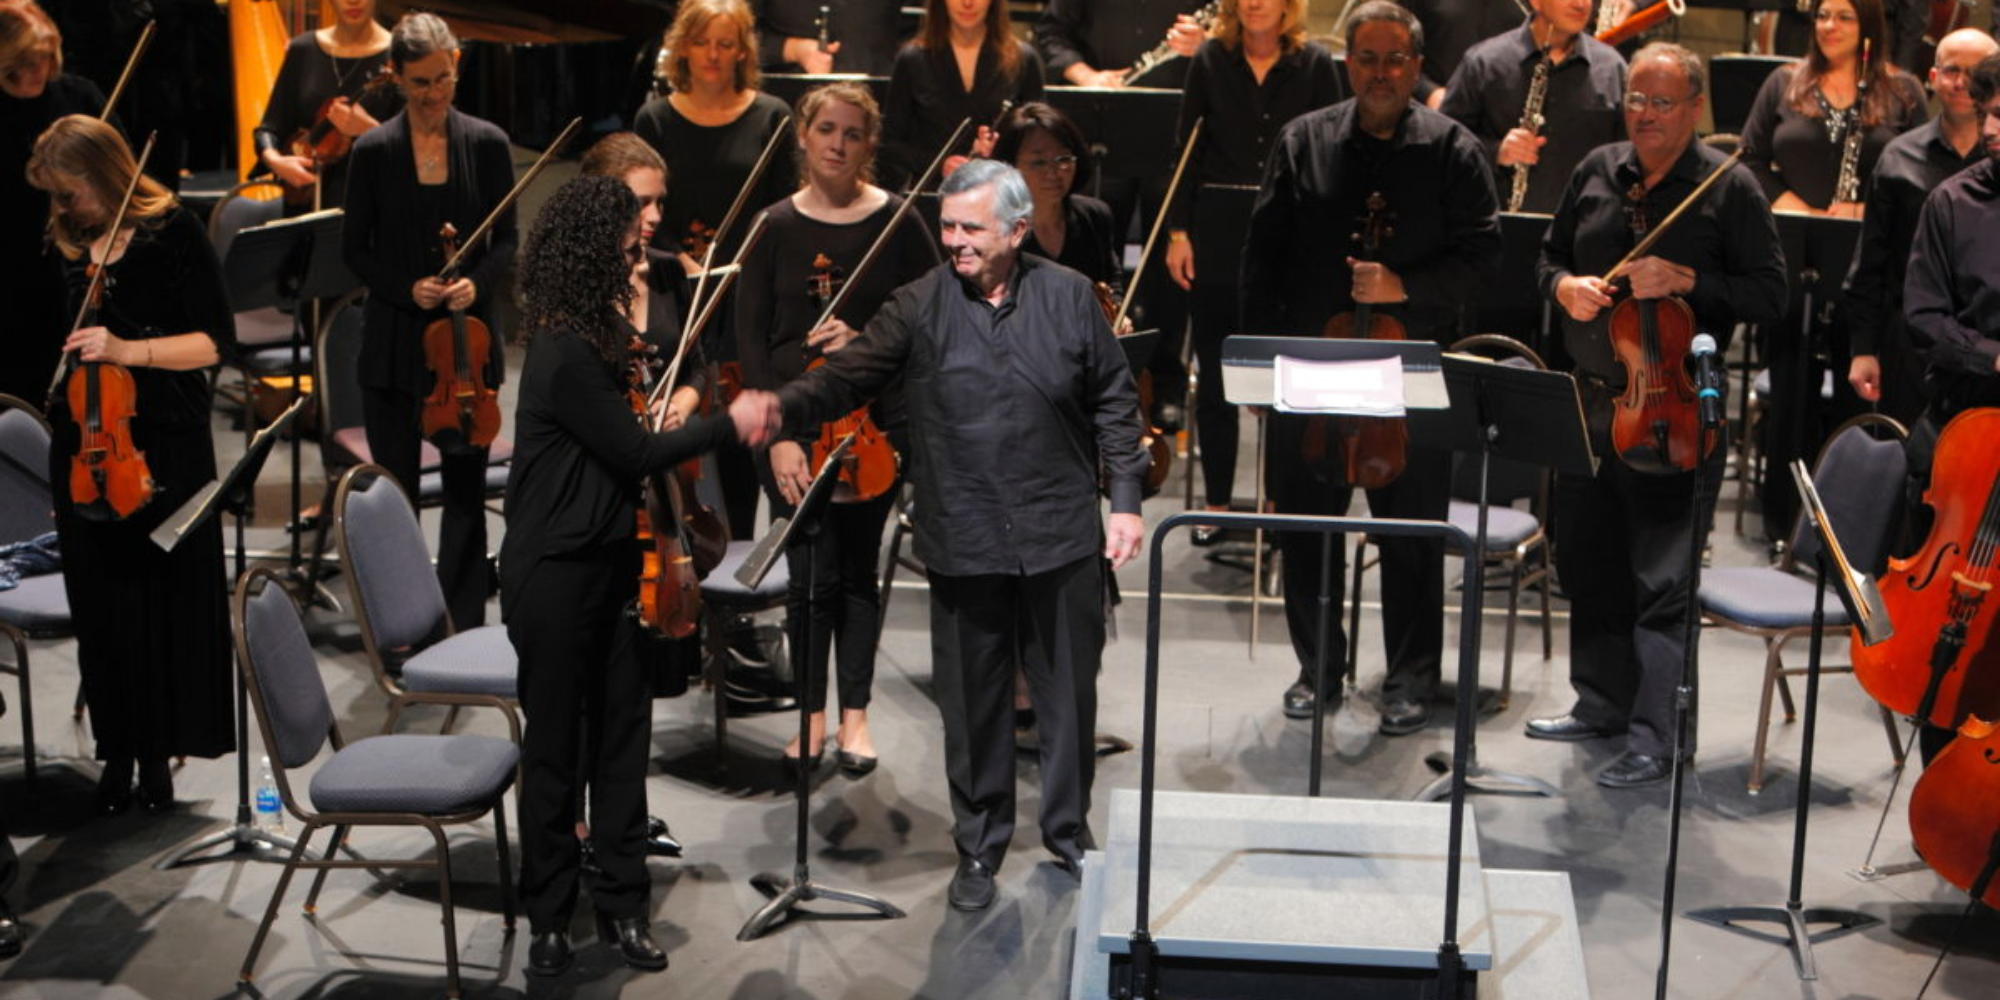 Chamber Orchestra of the Triangle: Building Capacity for Artistic Expansion